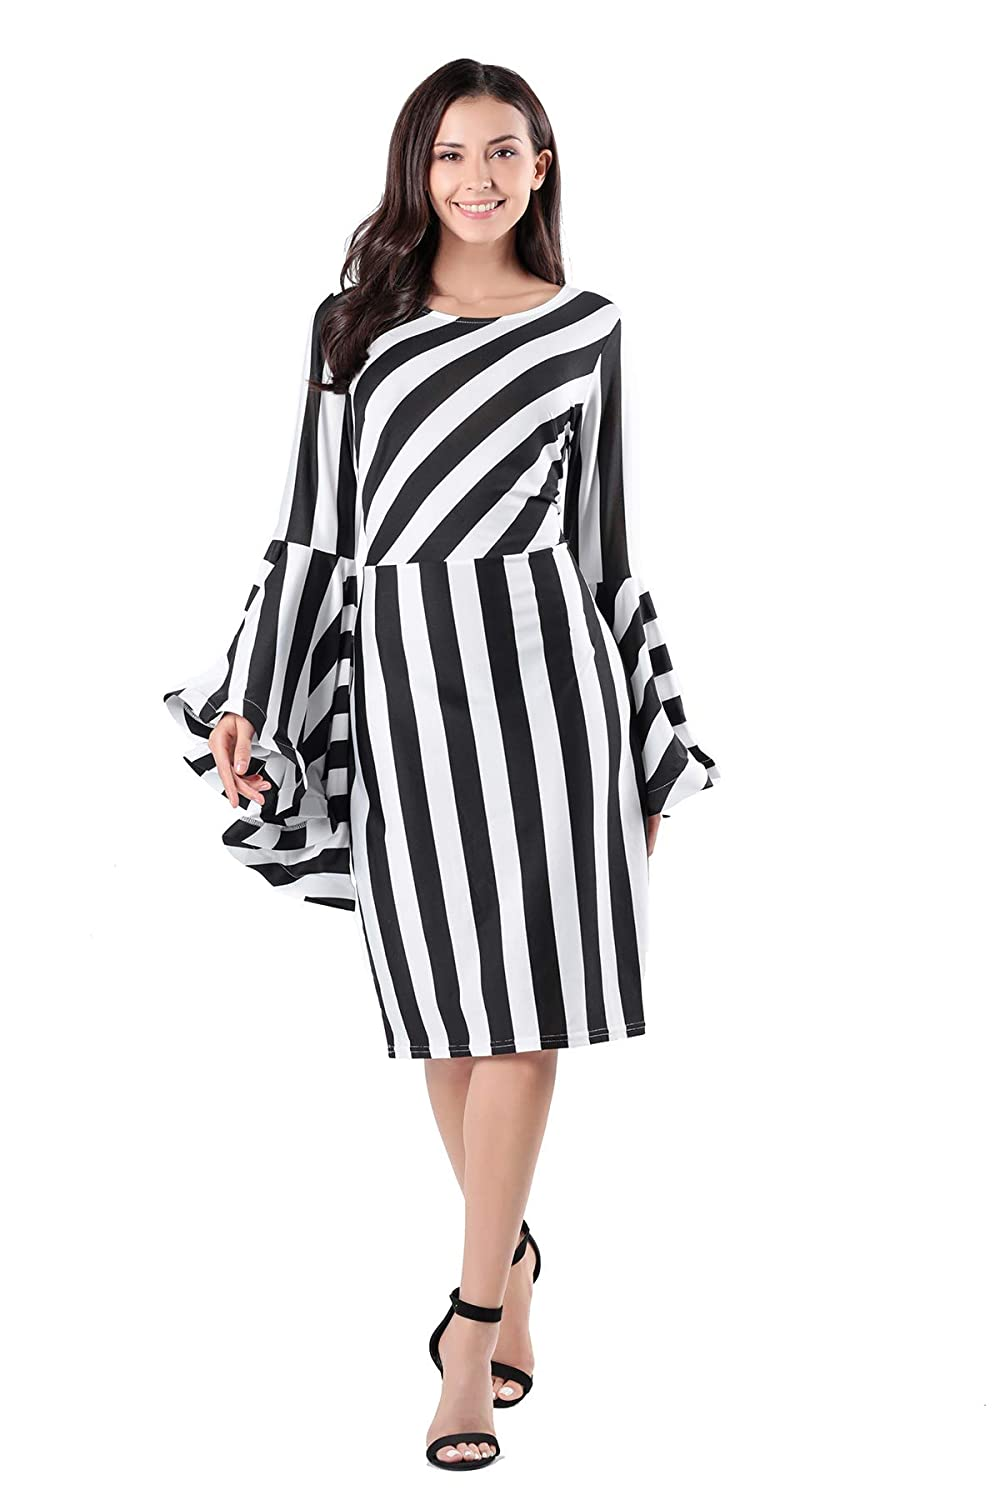 aa51b00385c Vcegari Women s Round Neck Plus Size Slim Cut Black and White Striped Long  Flare Bell Sleeve Dress at Amazon Women s Clothing store